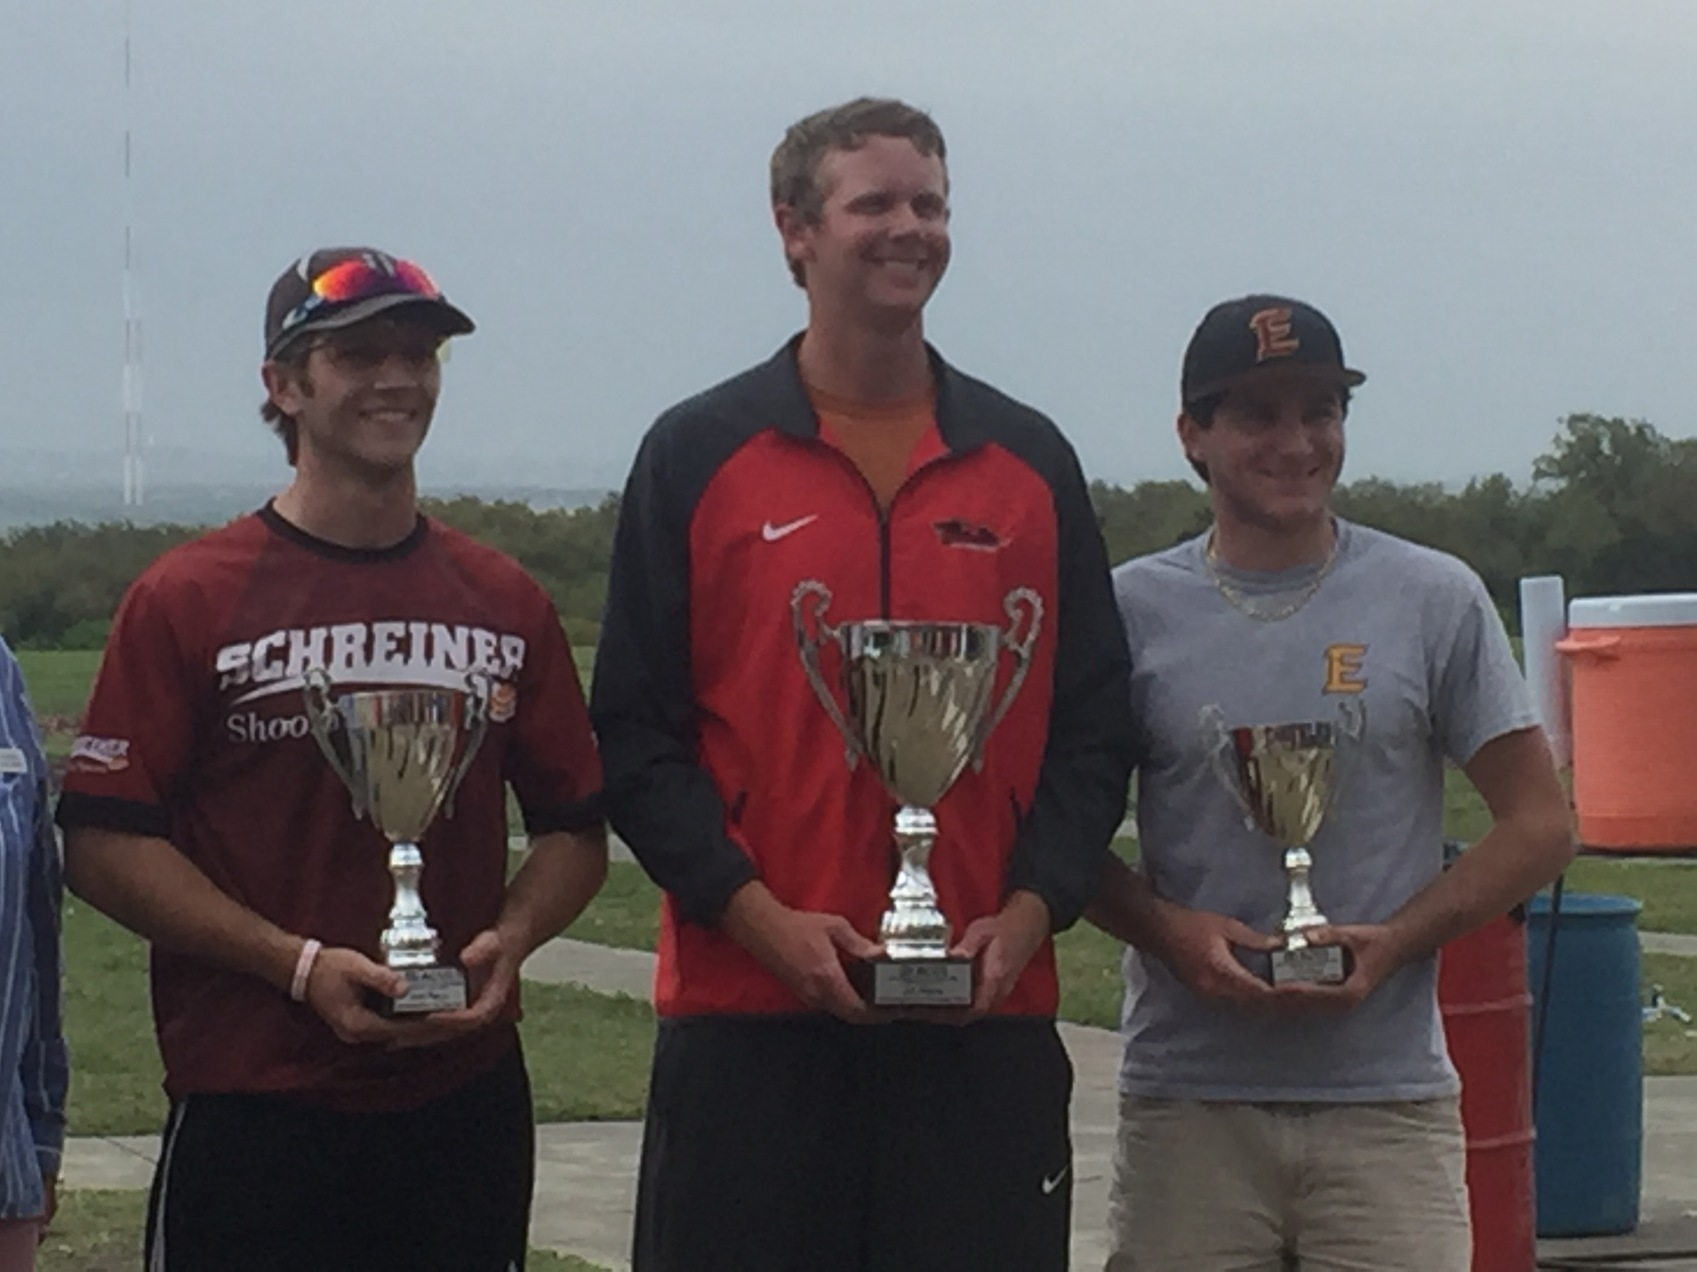 Colton Evans Places 3rd out of top 25 International Skeet Shooters Across the Country